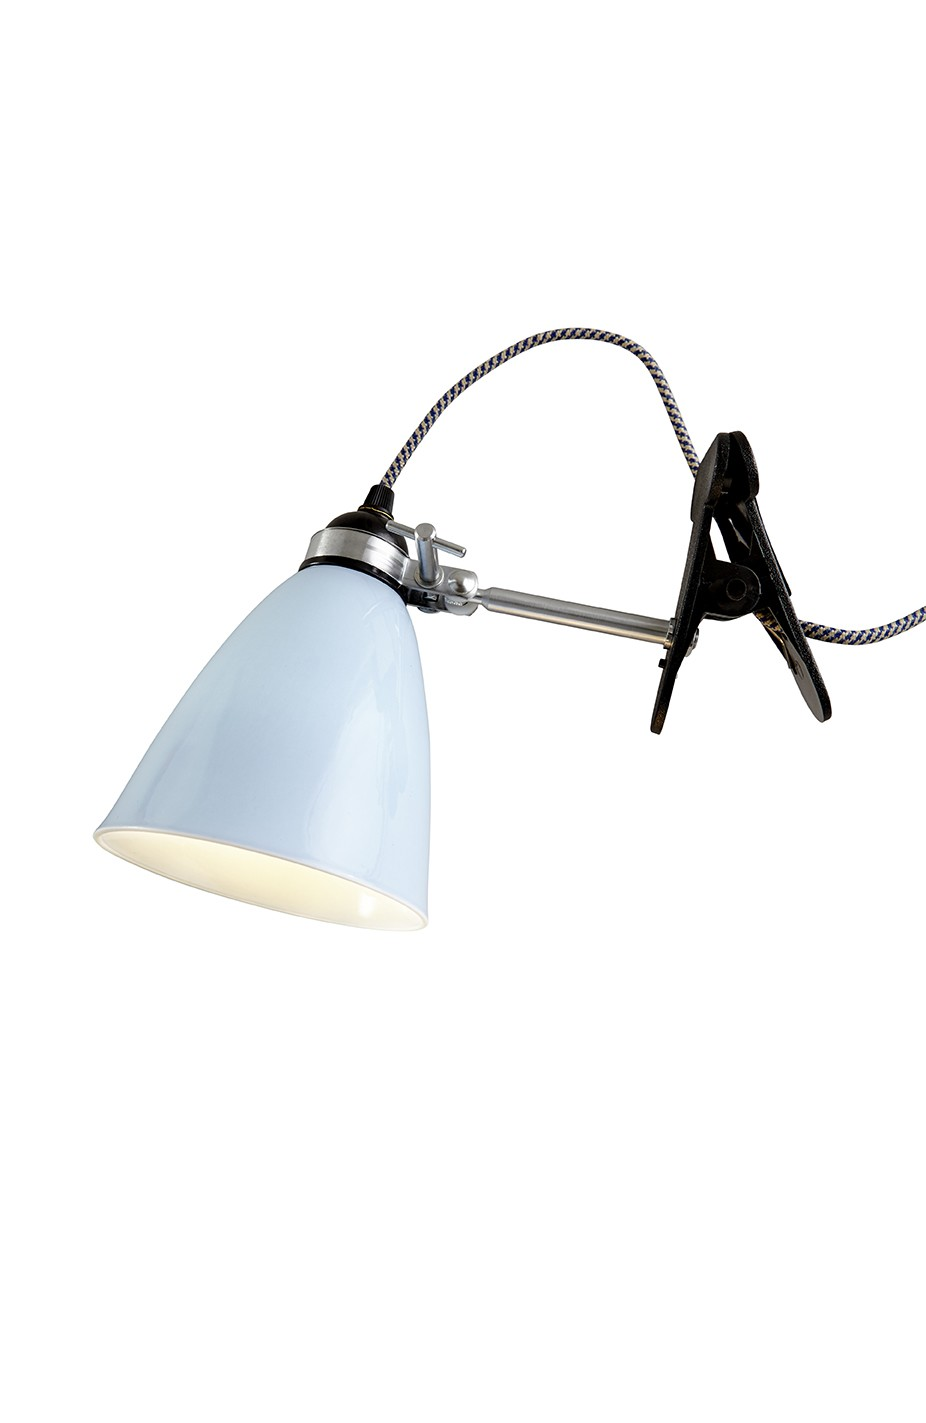 Hector Dome Clip Light Light Blue, Small